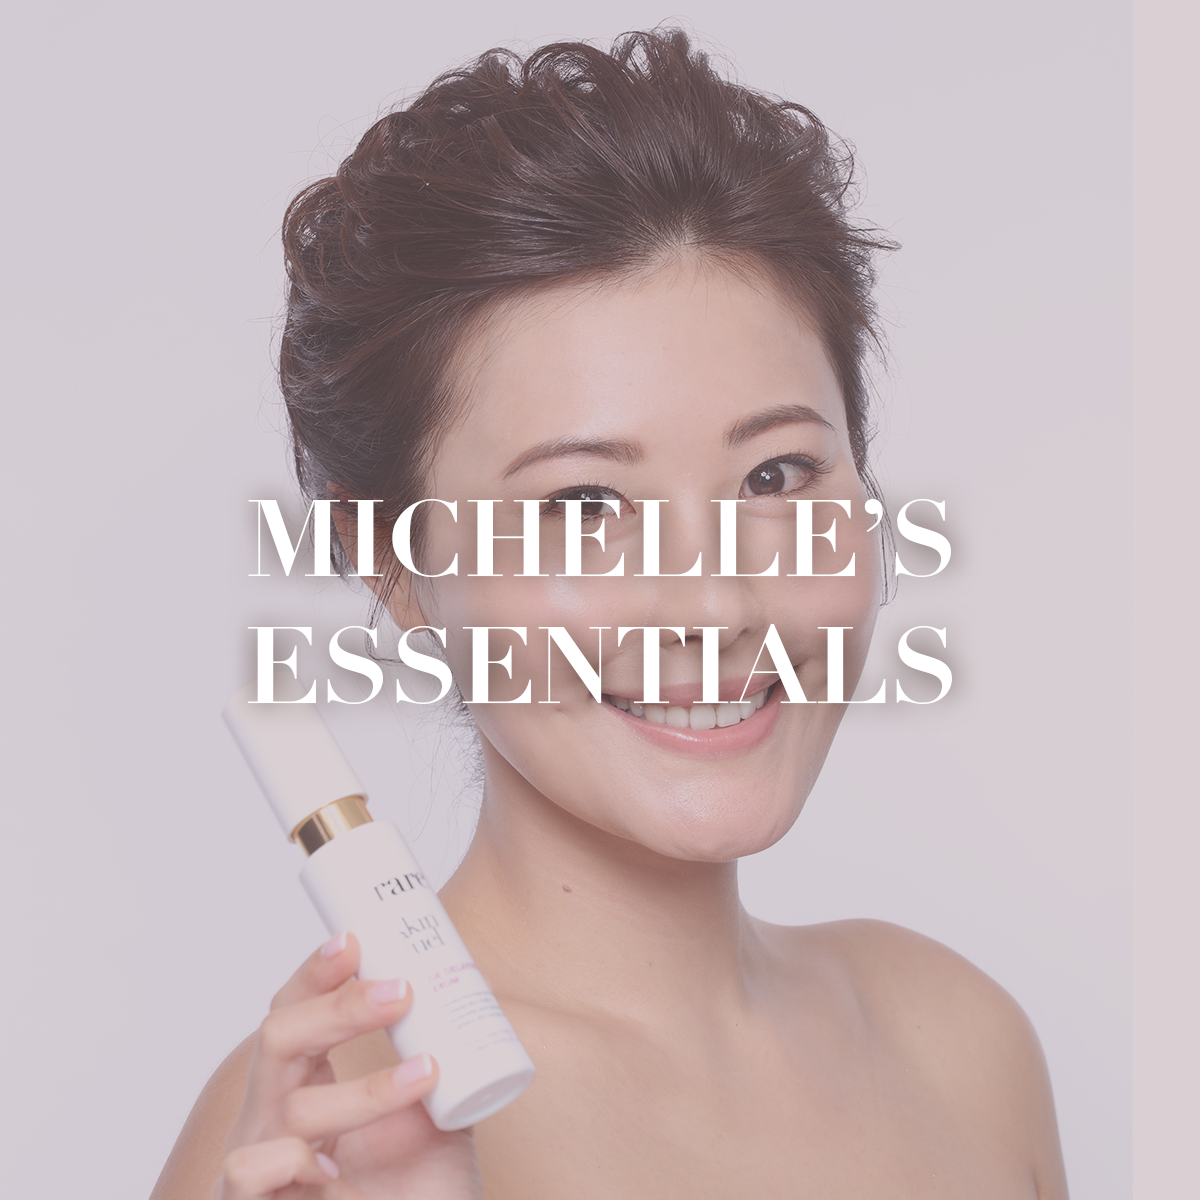 Michelle's Essentials-RARE SkinFuel